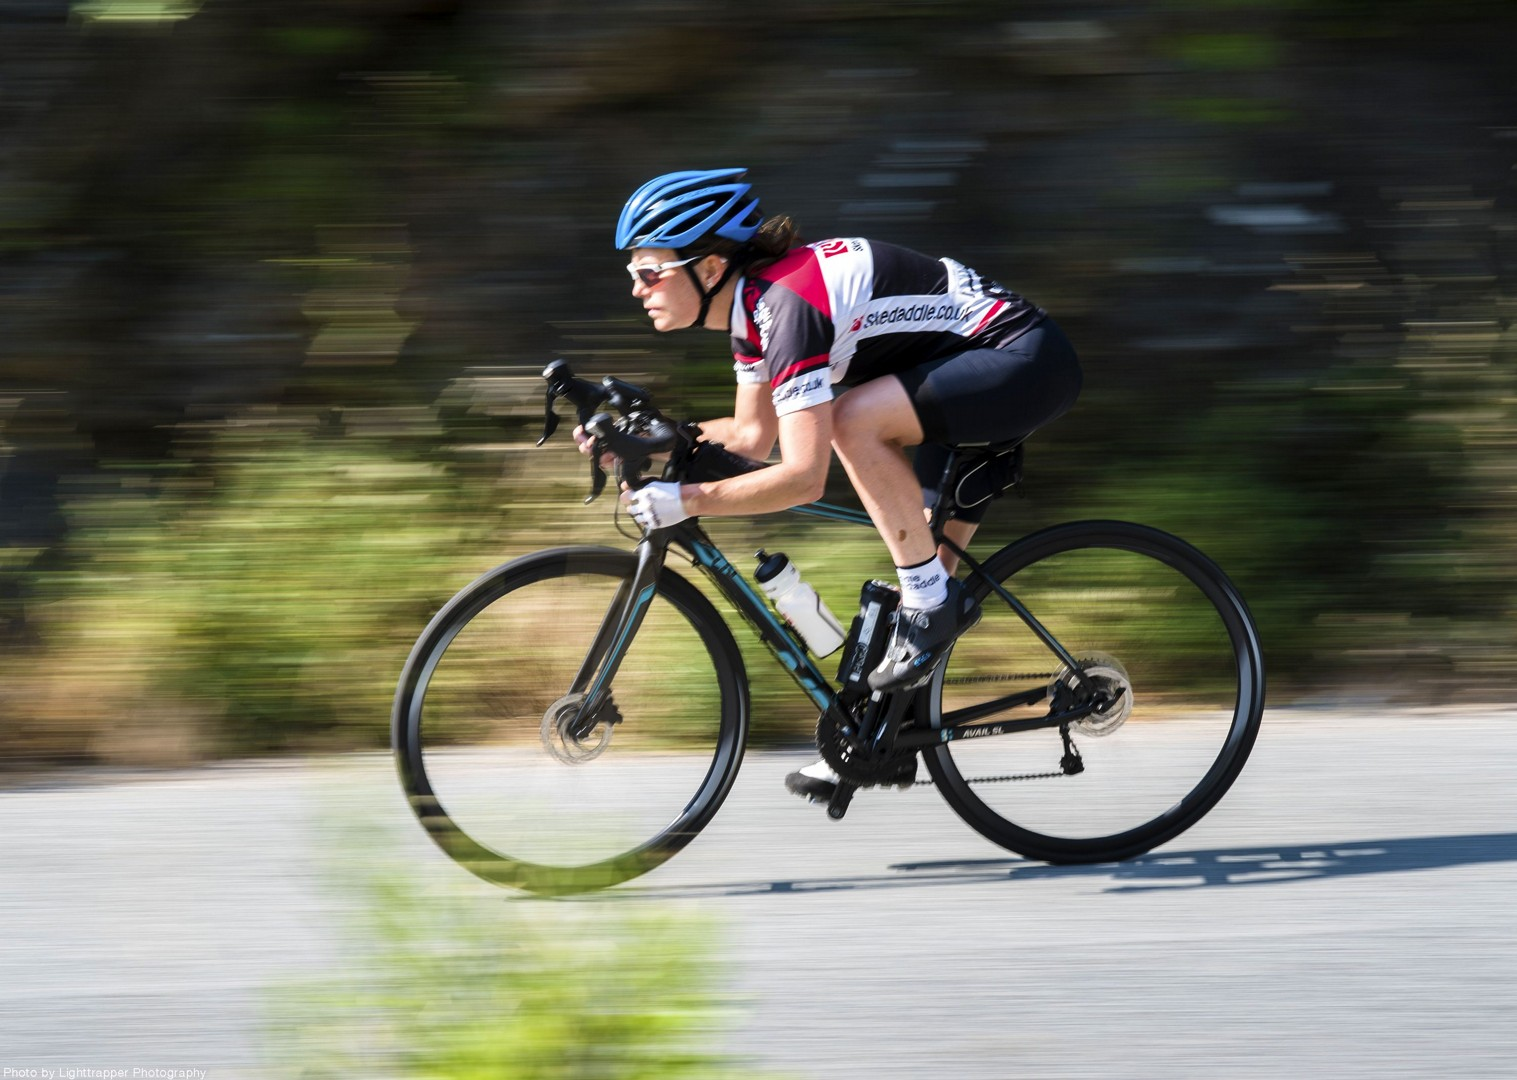 speed-road-bike-saddle-skedaddle.jpg - France - Provence - Alpes Maritimes - Guided Road Cycling Holiday - Road Cycling